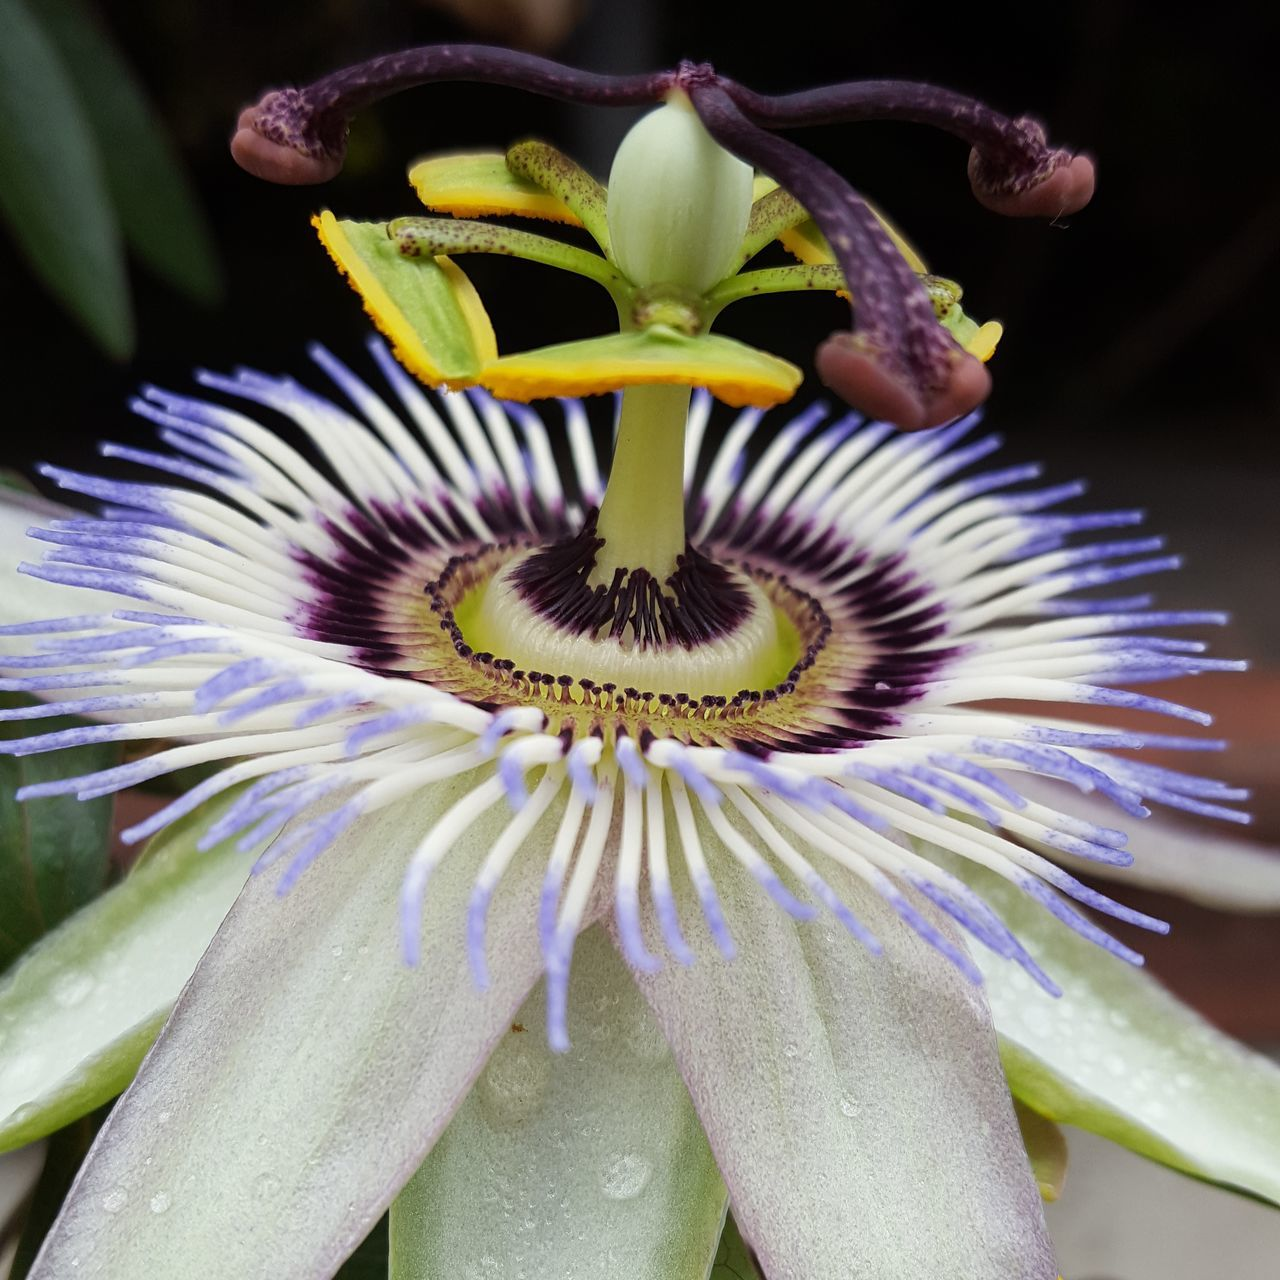 flower, petal, growth, fragility, freshness, beauty in nature, flower head, nature, plant, passion flower, close-up, stamen, pollen, no people, outdoors, day, blooming, springtime